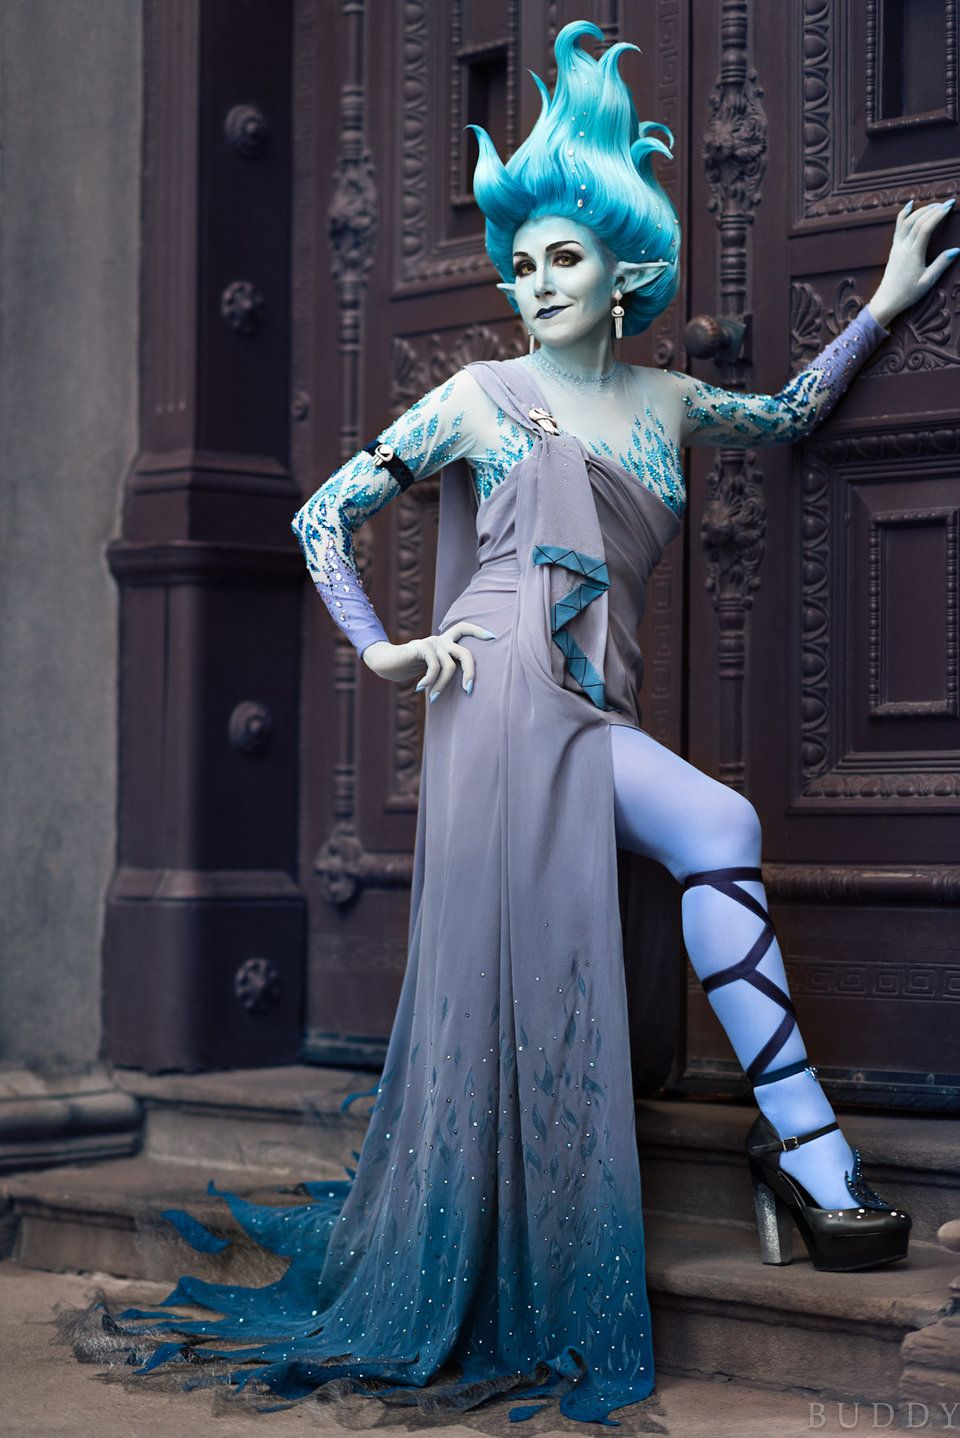 25 underrated Disney costumes that will help you stand out